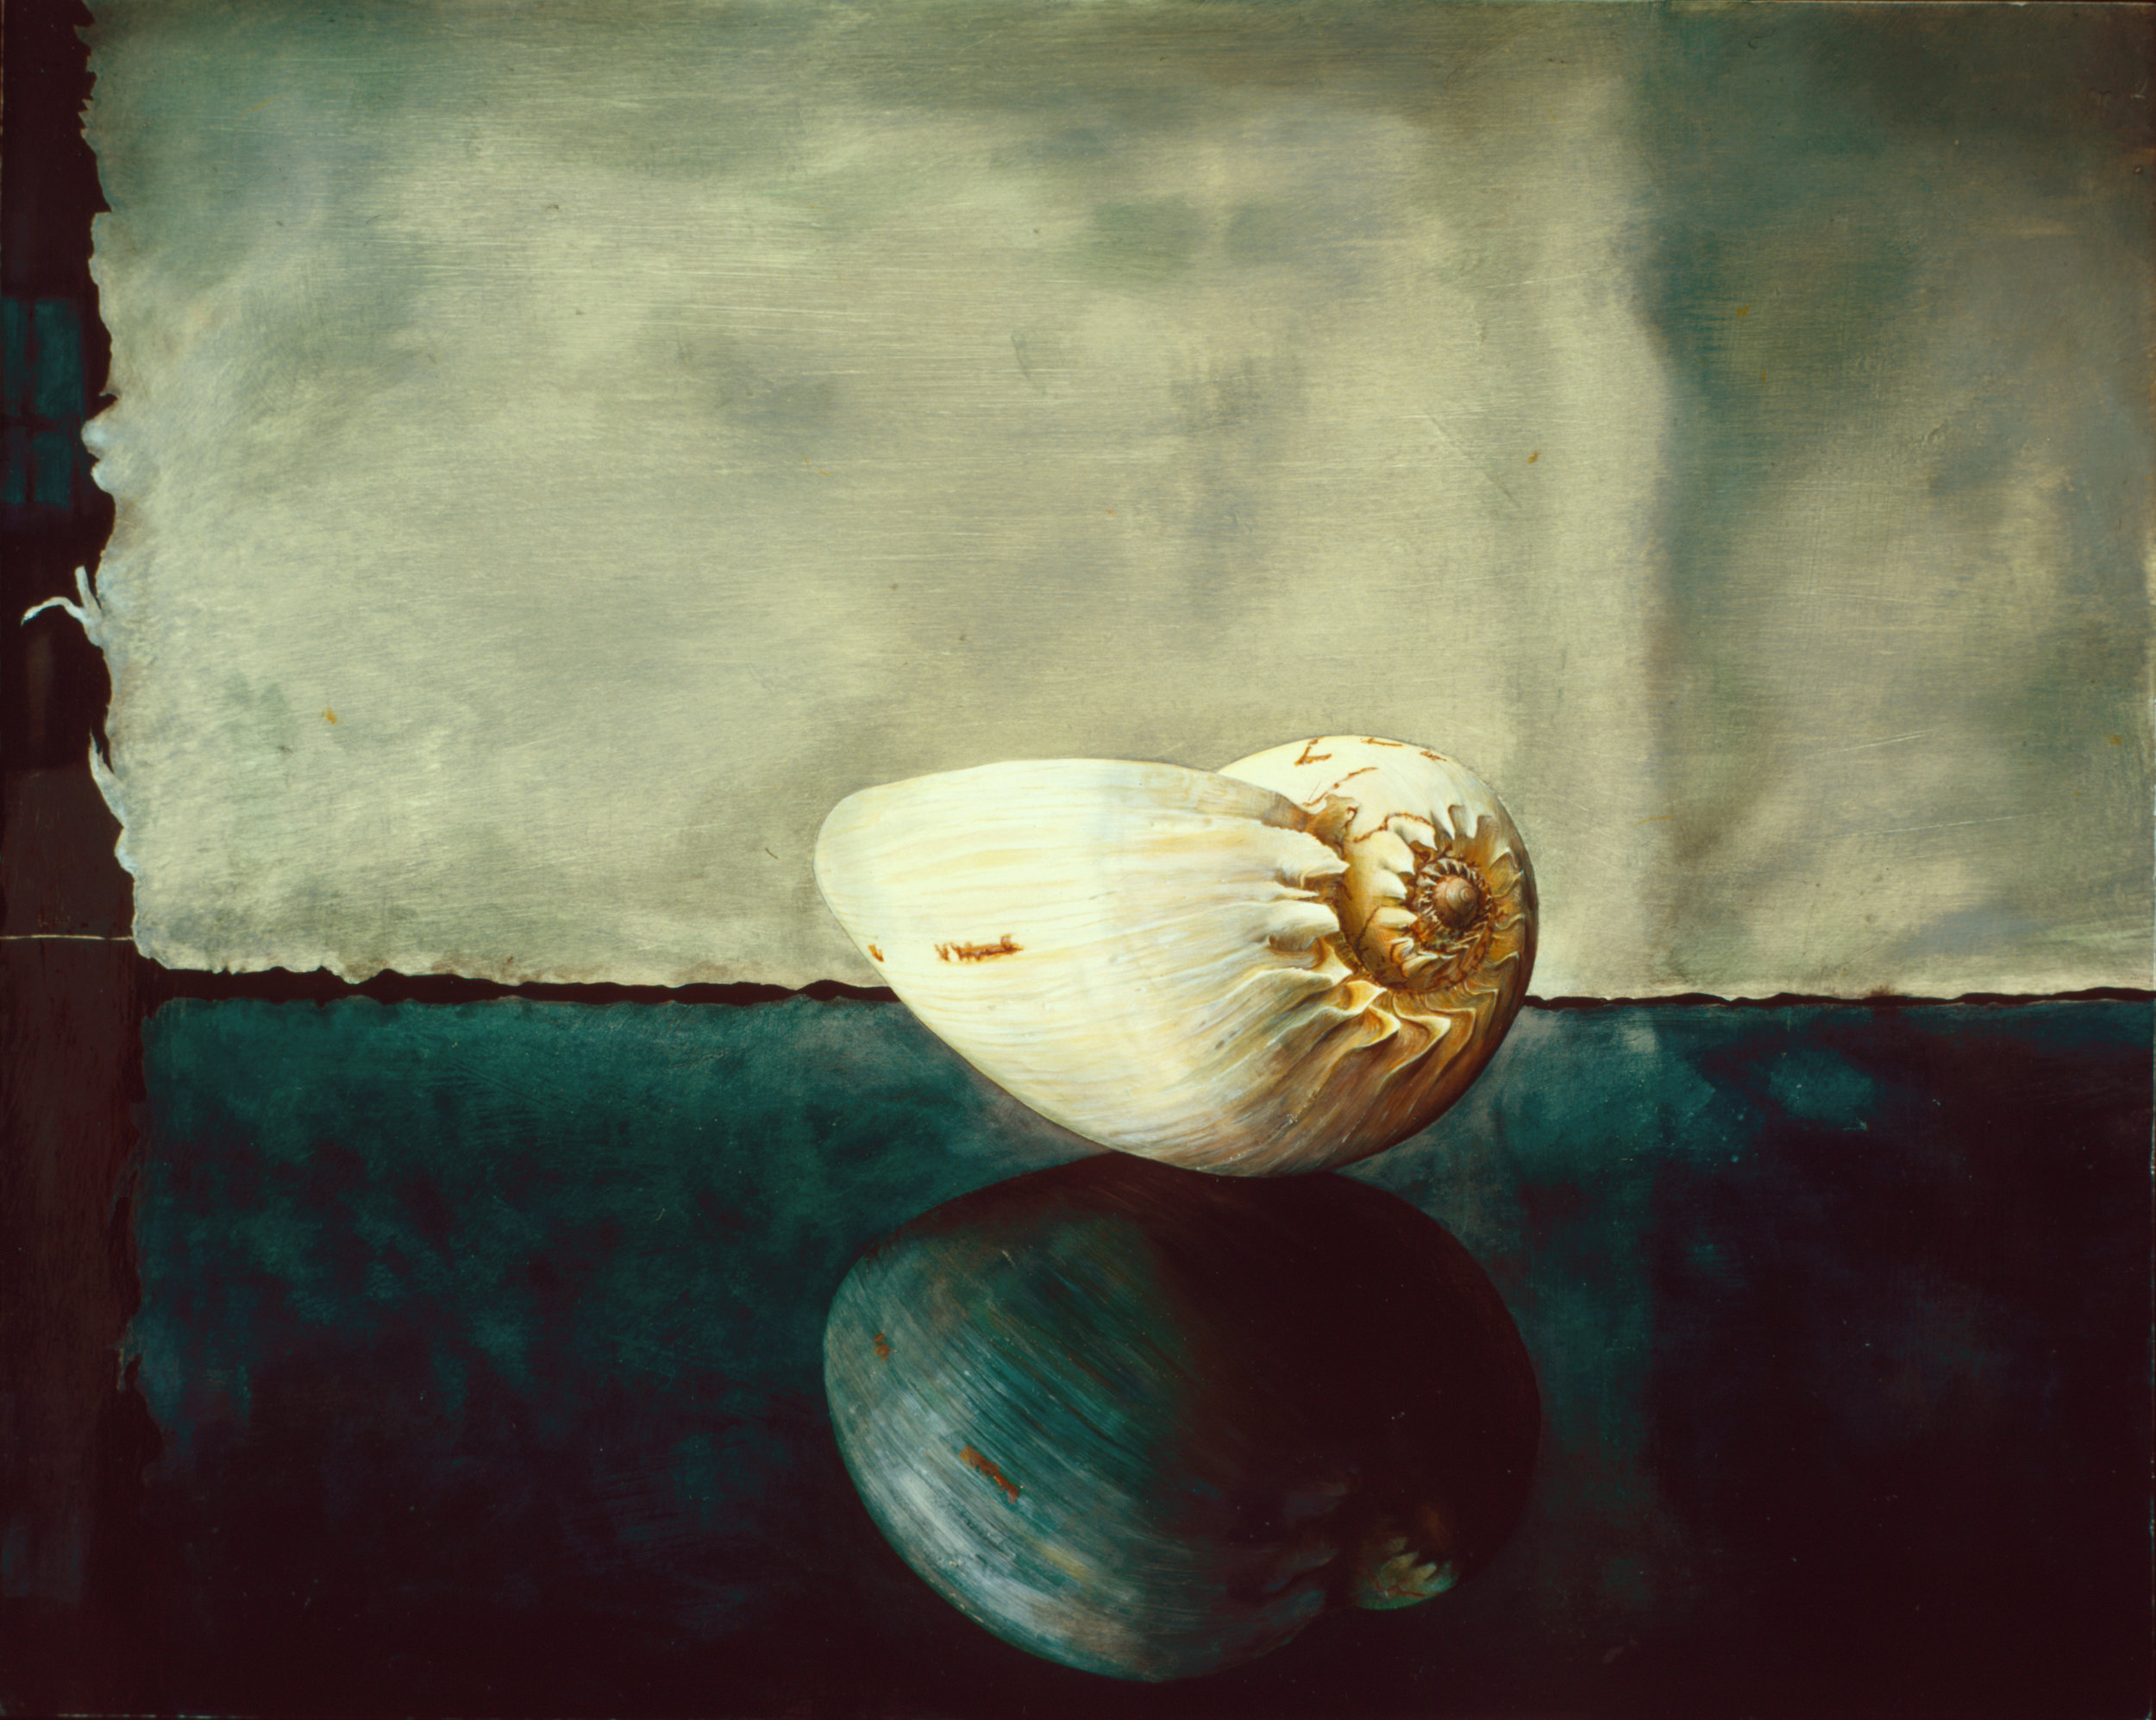 Portrait of a Shell